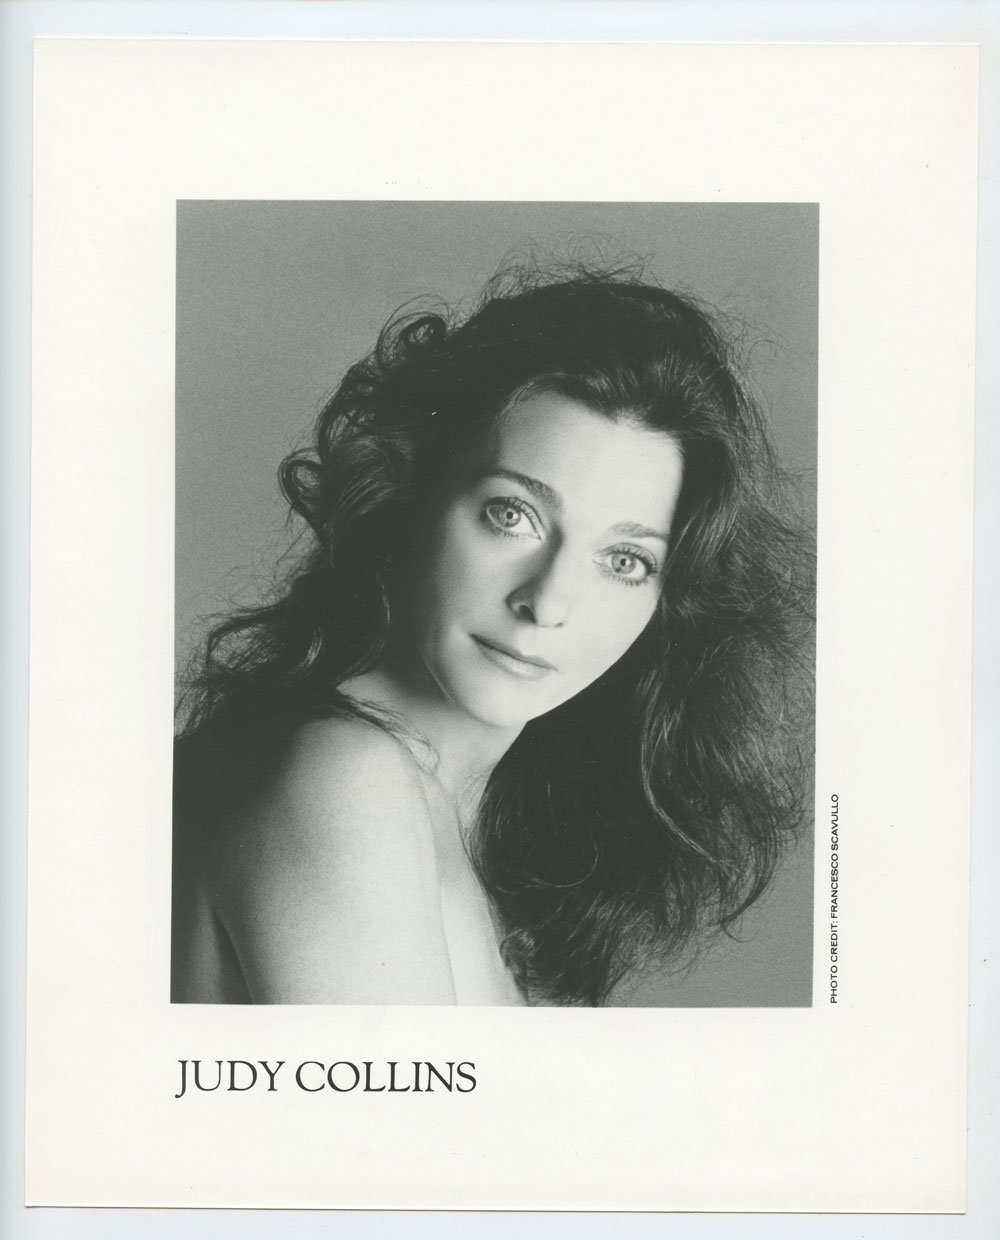 Judy Collins Photo 1988 Sing Out San Francisco Promo Promo